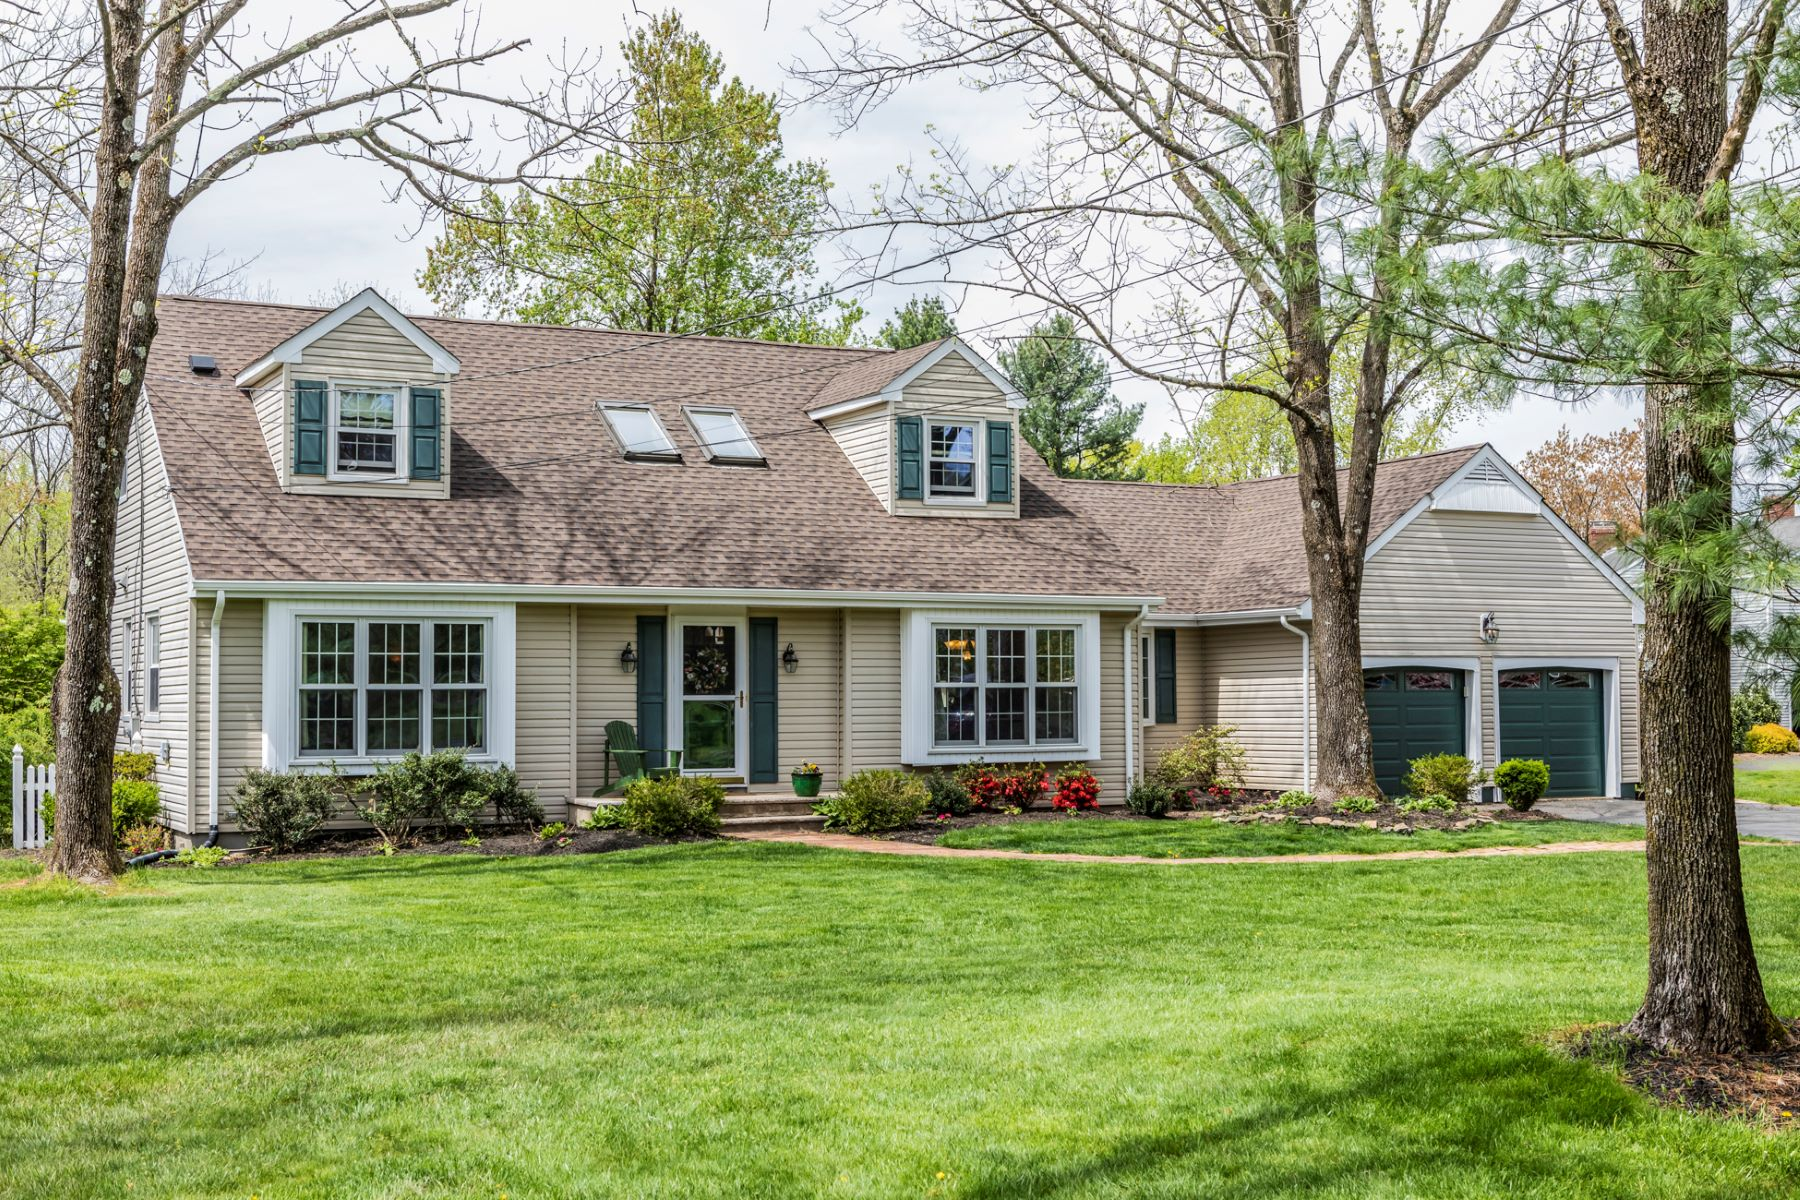 Single Family Homes for Sale at Charming Cape Built For Fun 41 Knickerbocker Drive, Belle Mead, New Jersey 08502 United StatesMunicipality: Montgomery Township